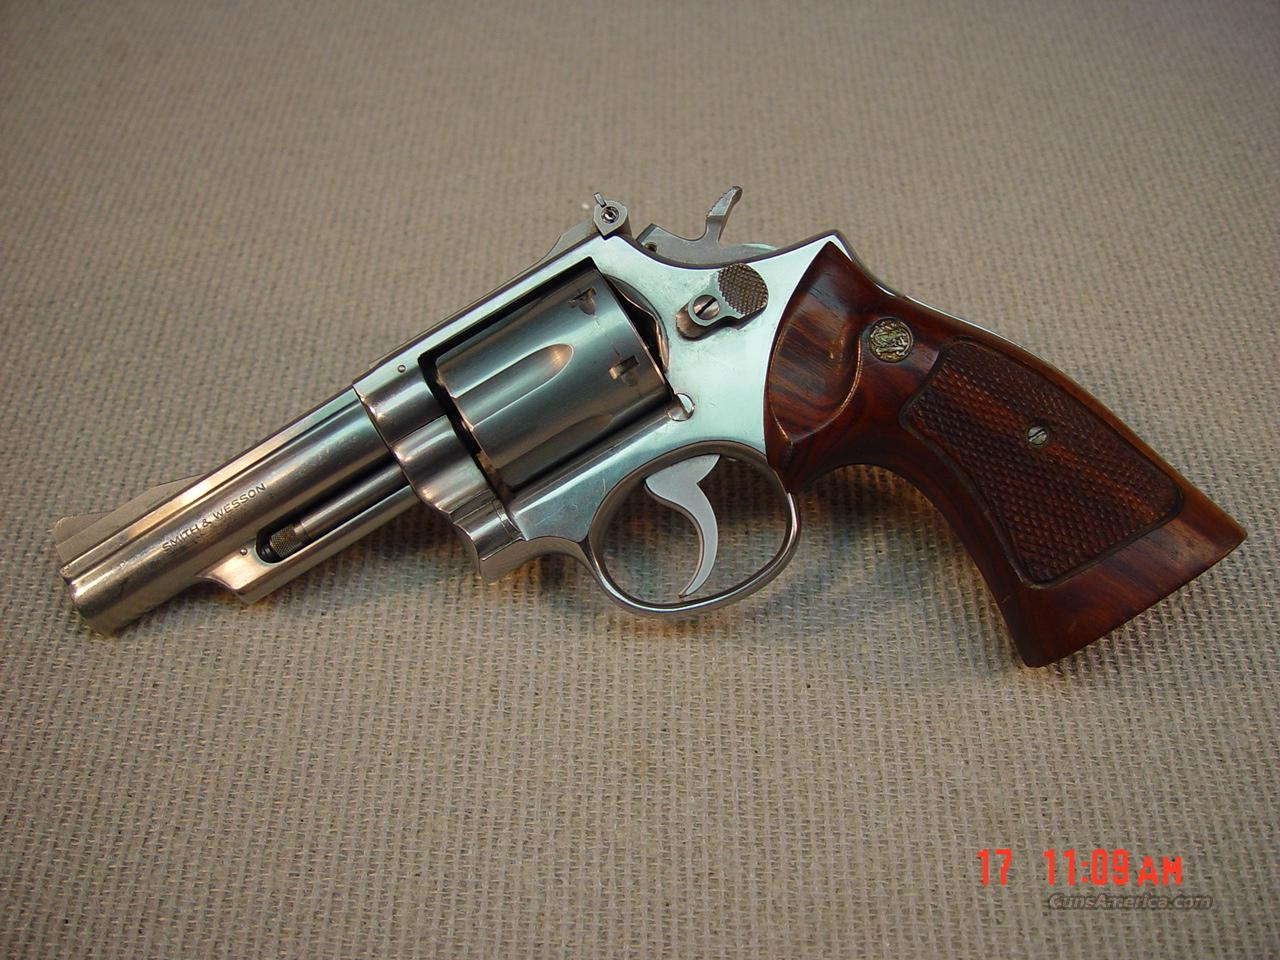 SMITH & WESSON Model 66 CUSTOM SHOP  Guns > Pistols > Smith & Wesson Revolvers > Full Frame Revolver